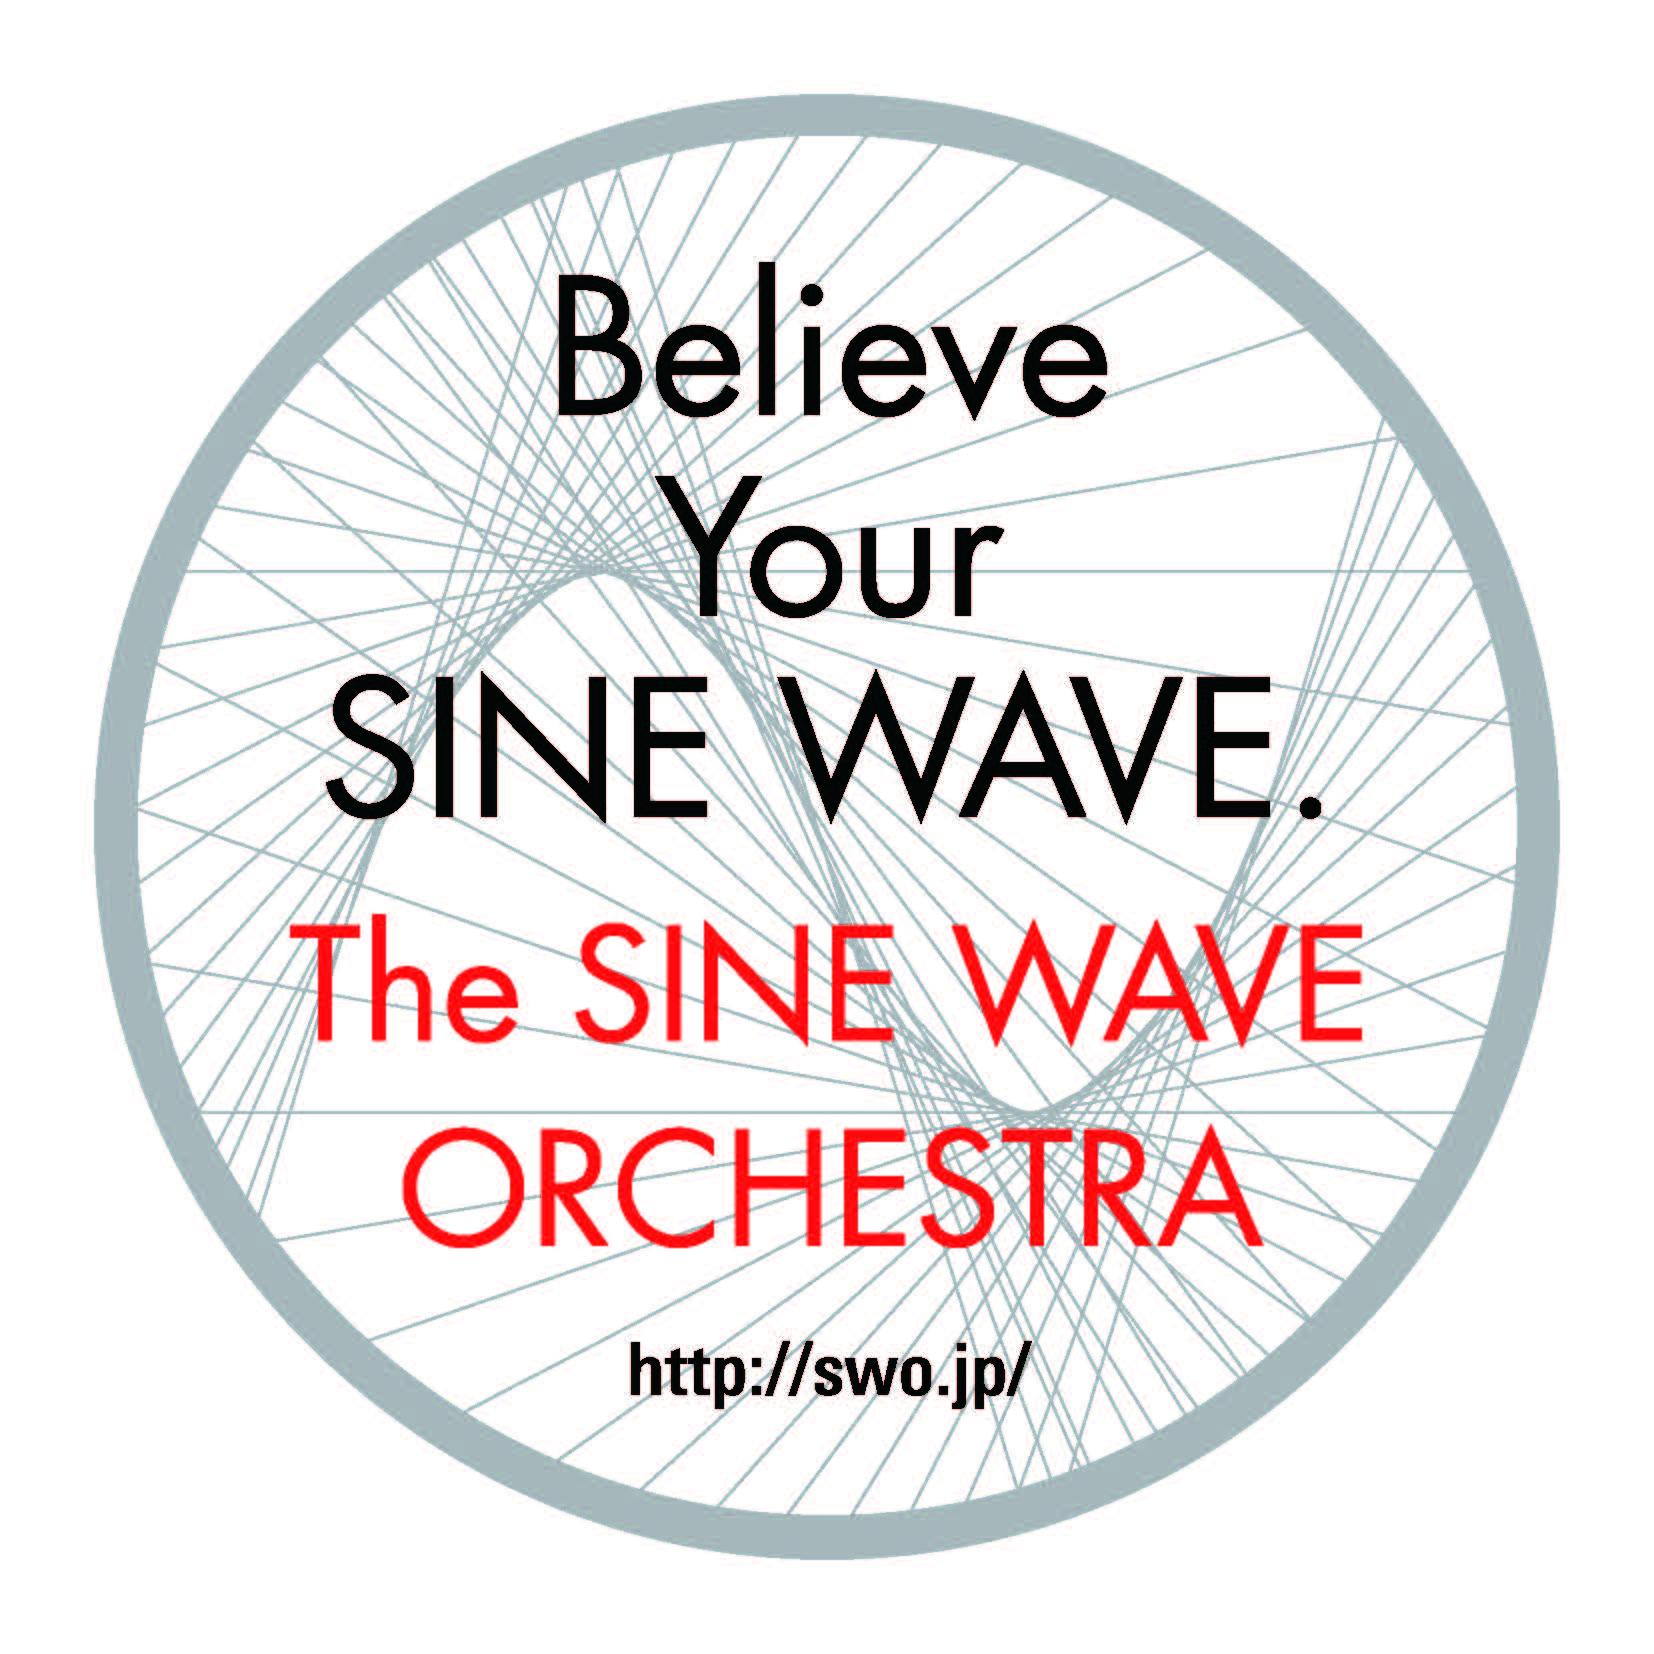 TheSINEWAVEORCHESTRA.jpg